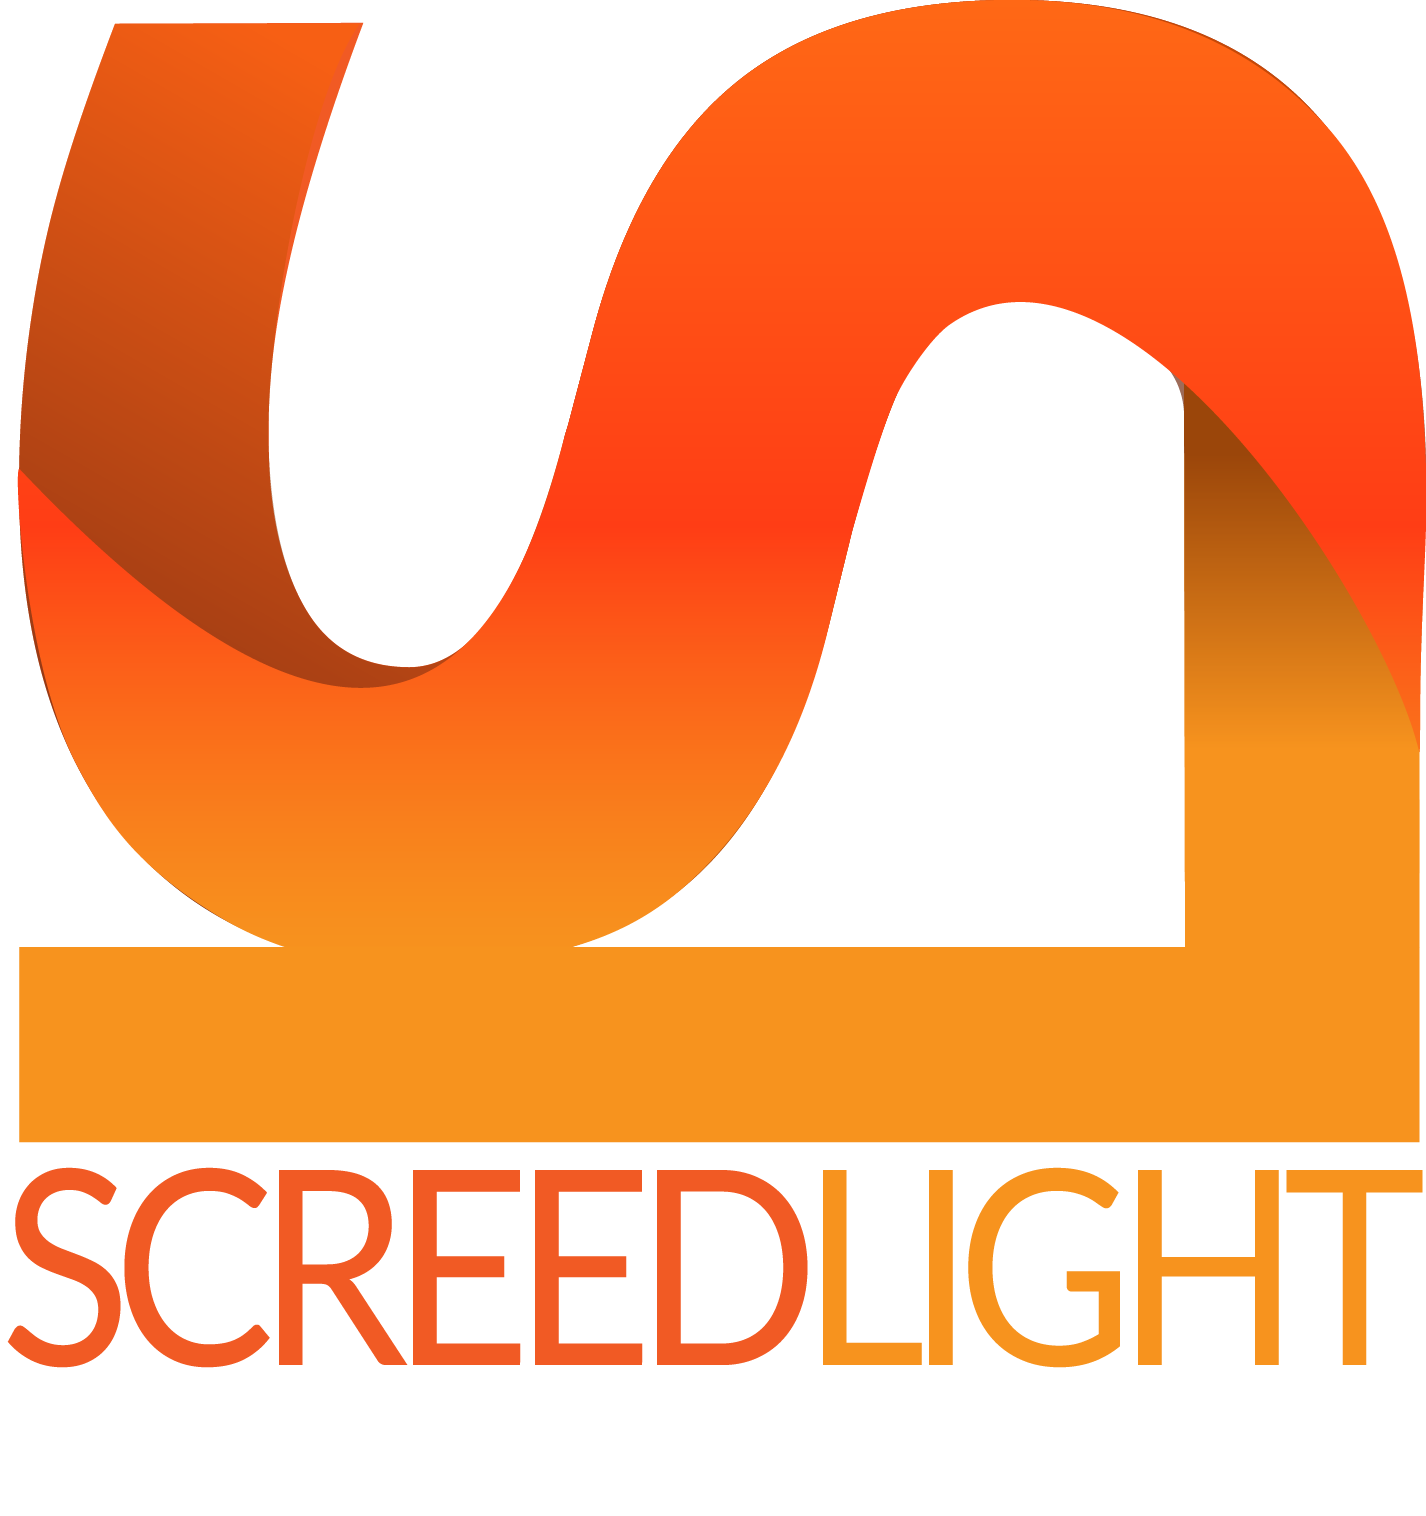 Screedlight